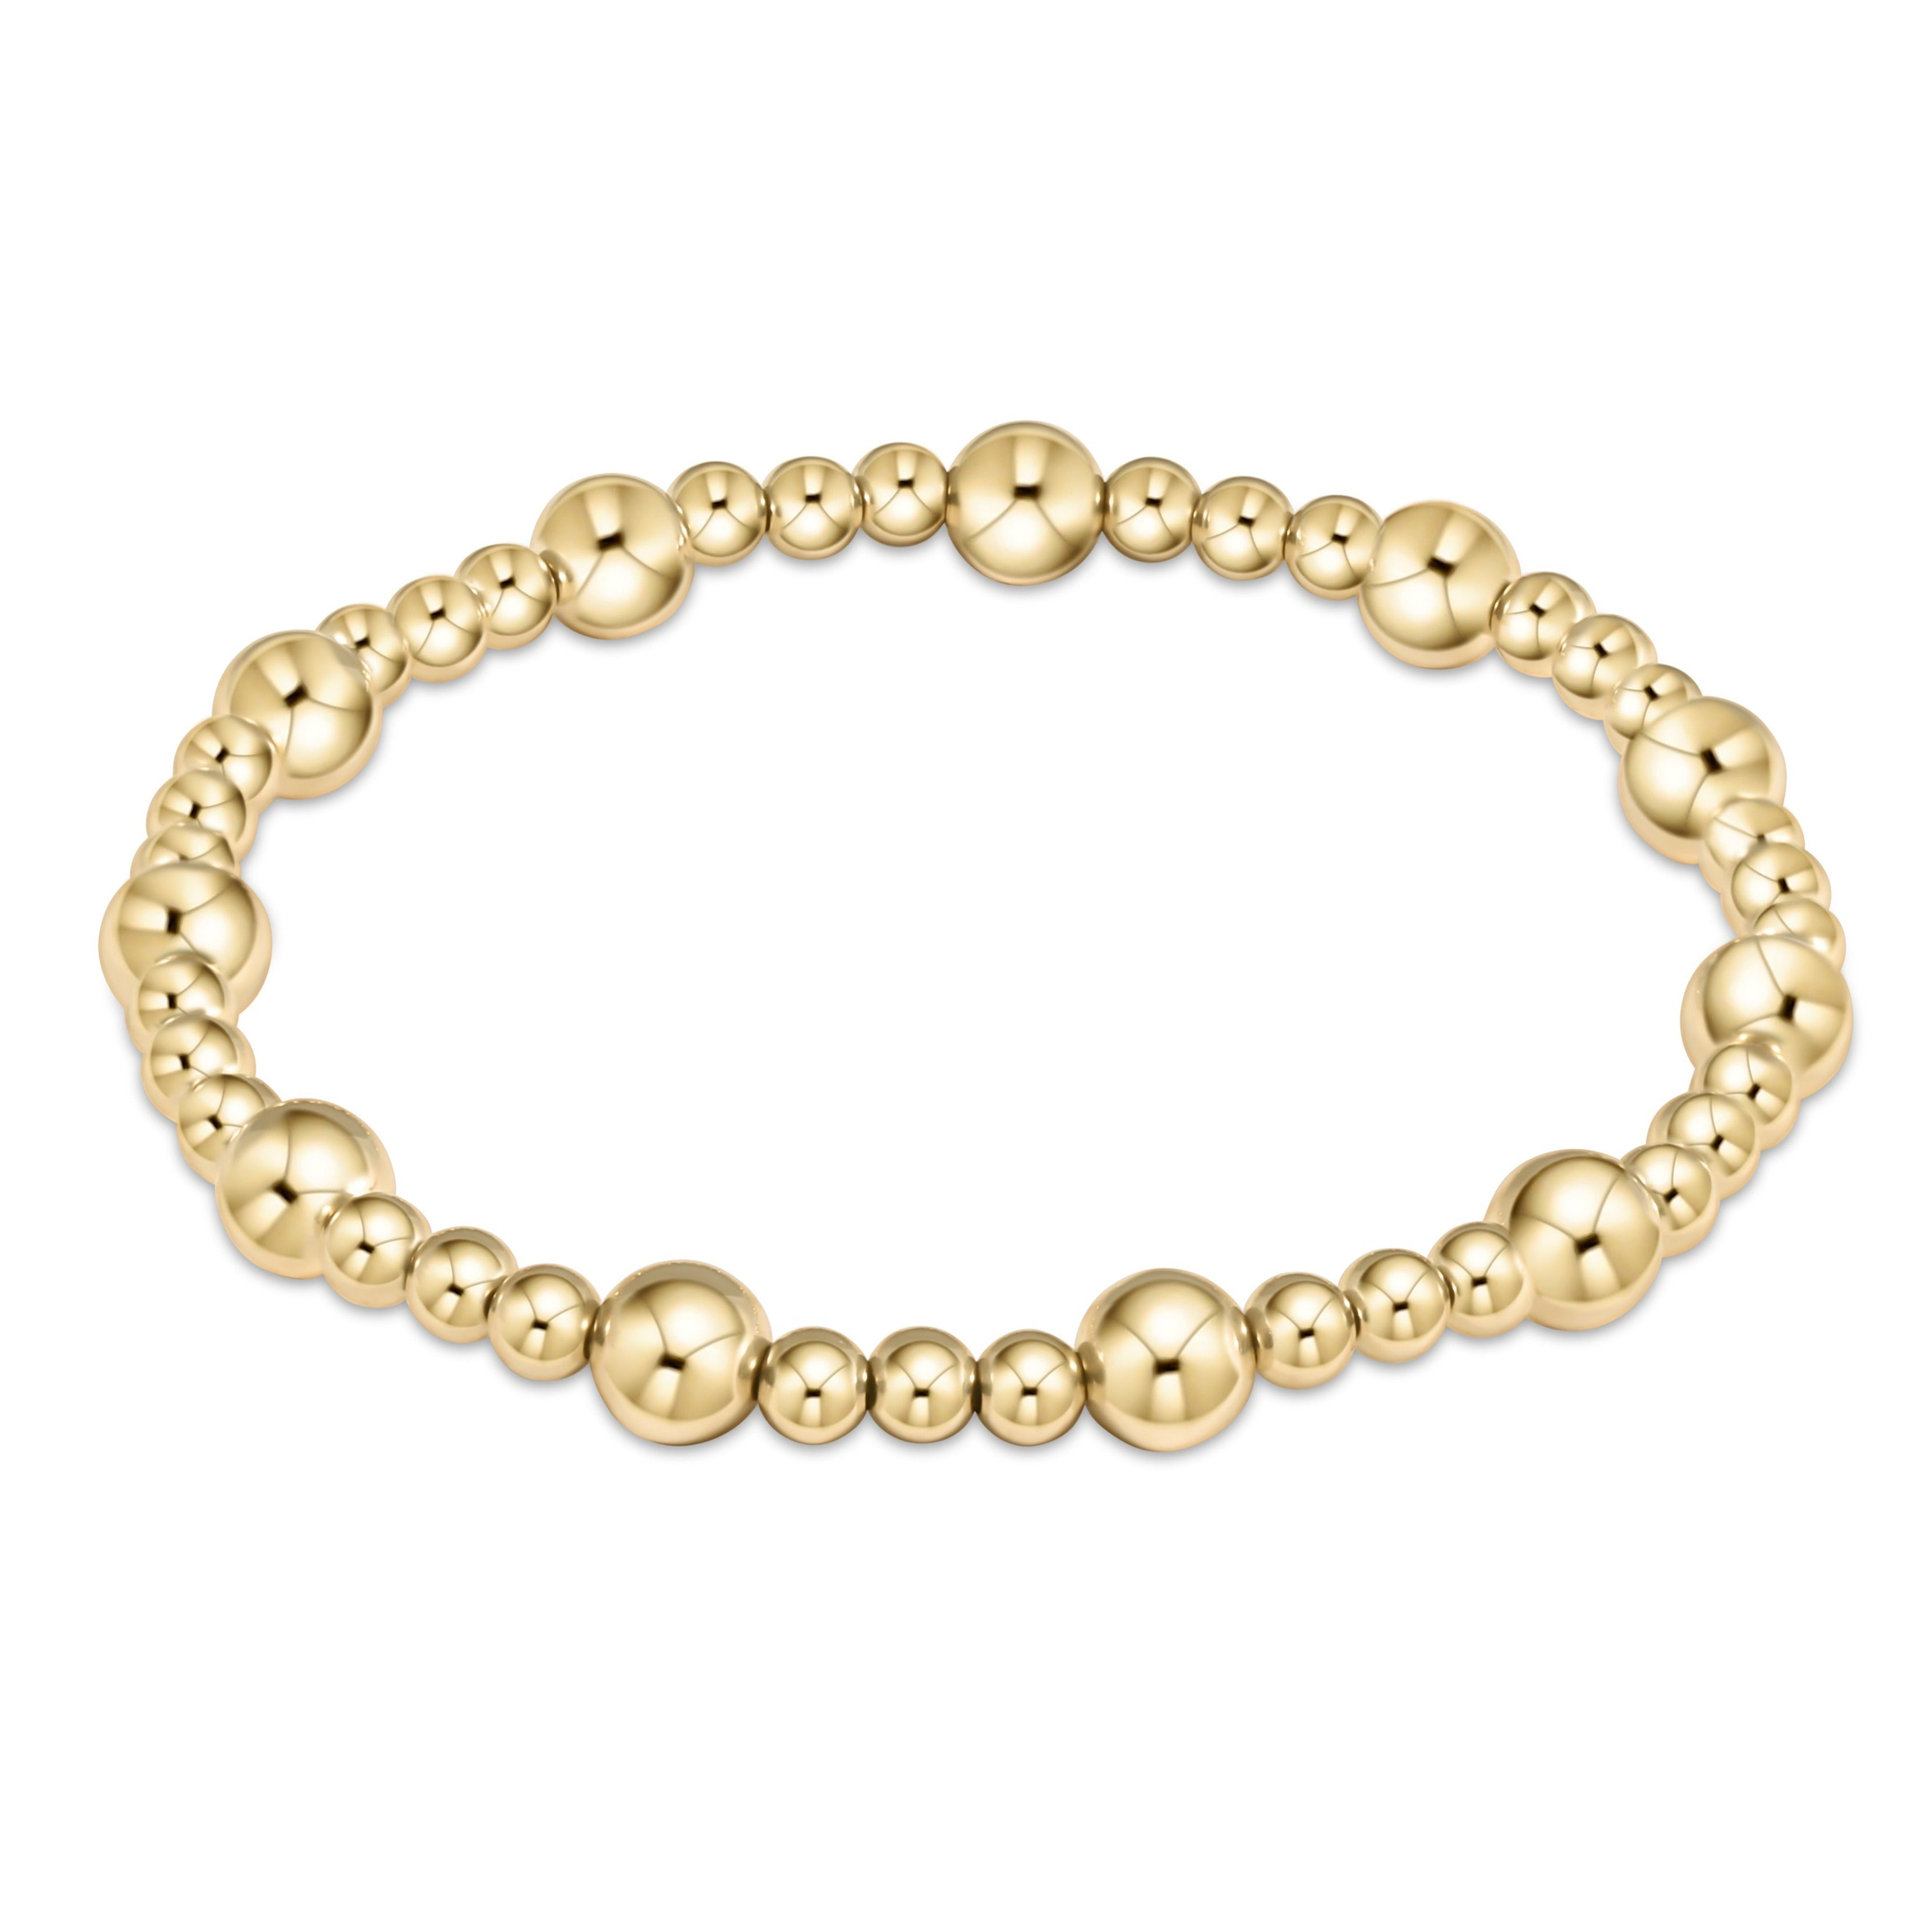 Classic Sincerity Pattern 6mm Bead Bracelet - Gold